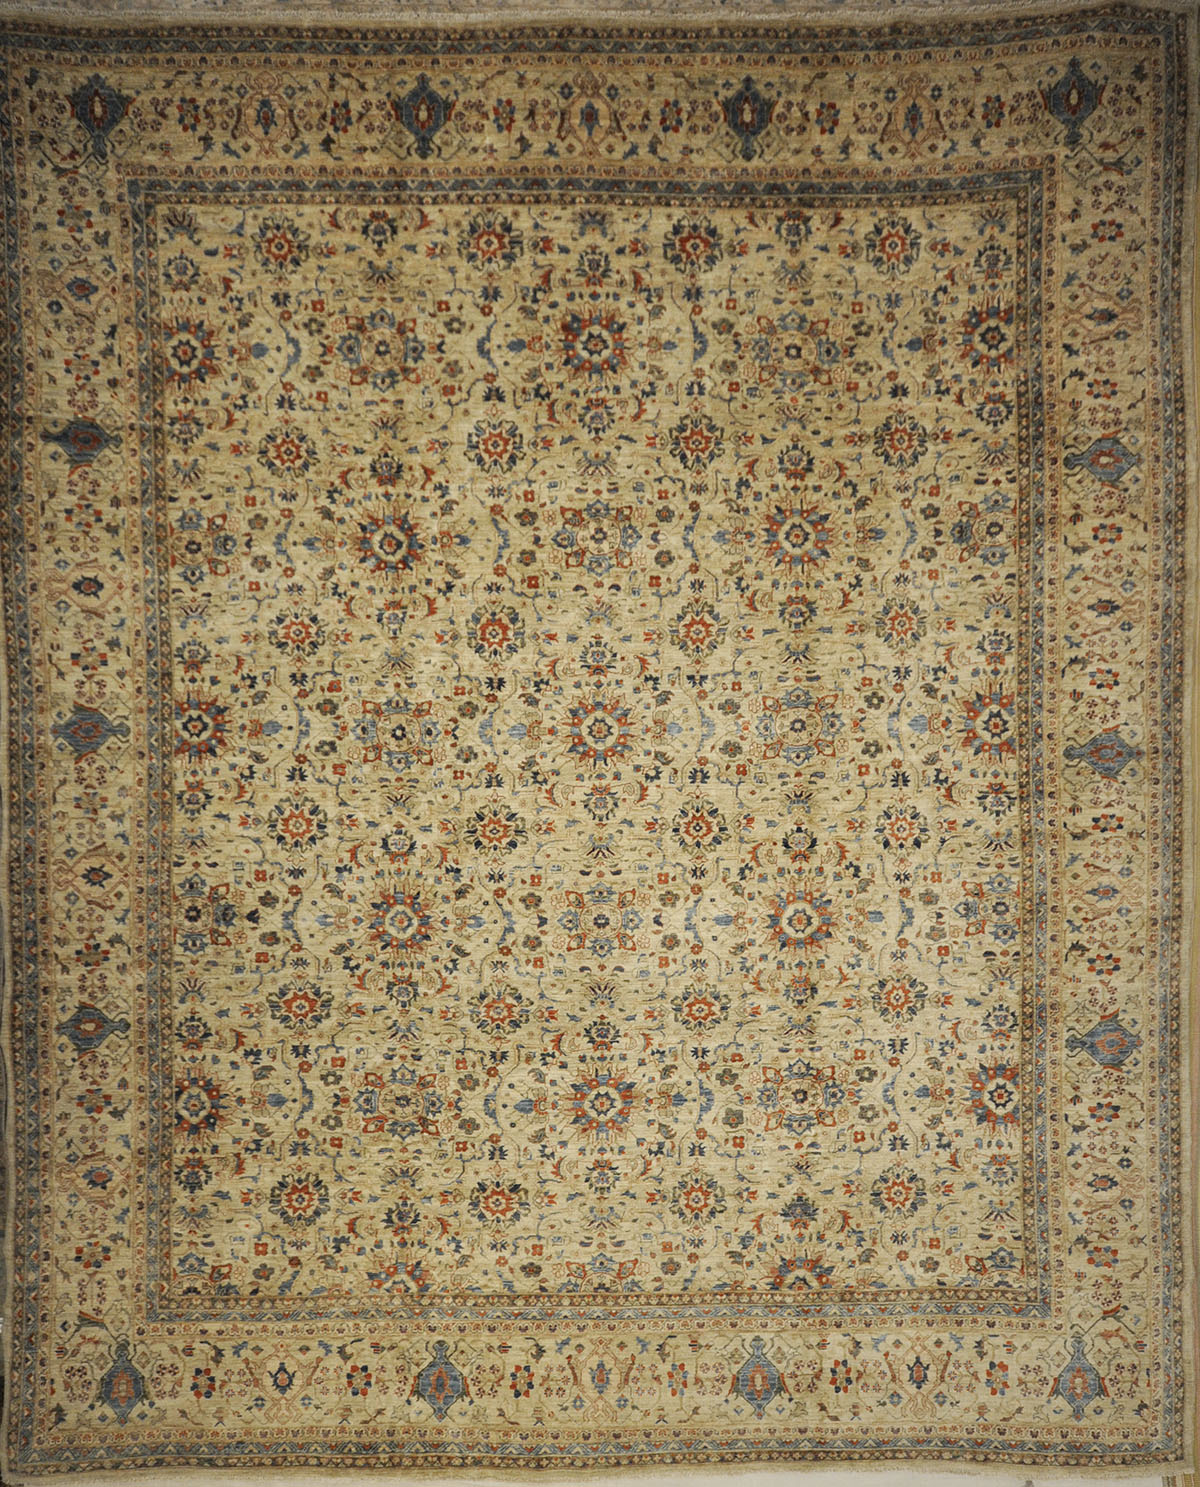 Finest Ziegler & Co Farahan rugs and more oriental carpet 31133-